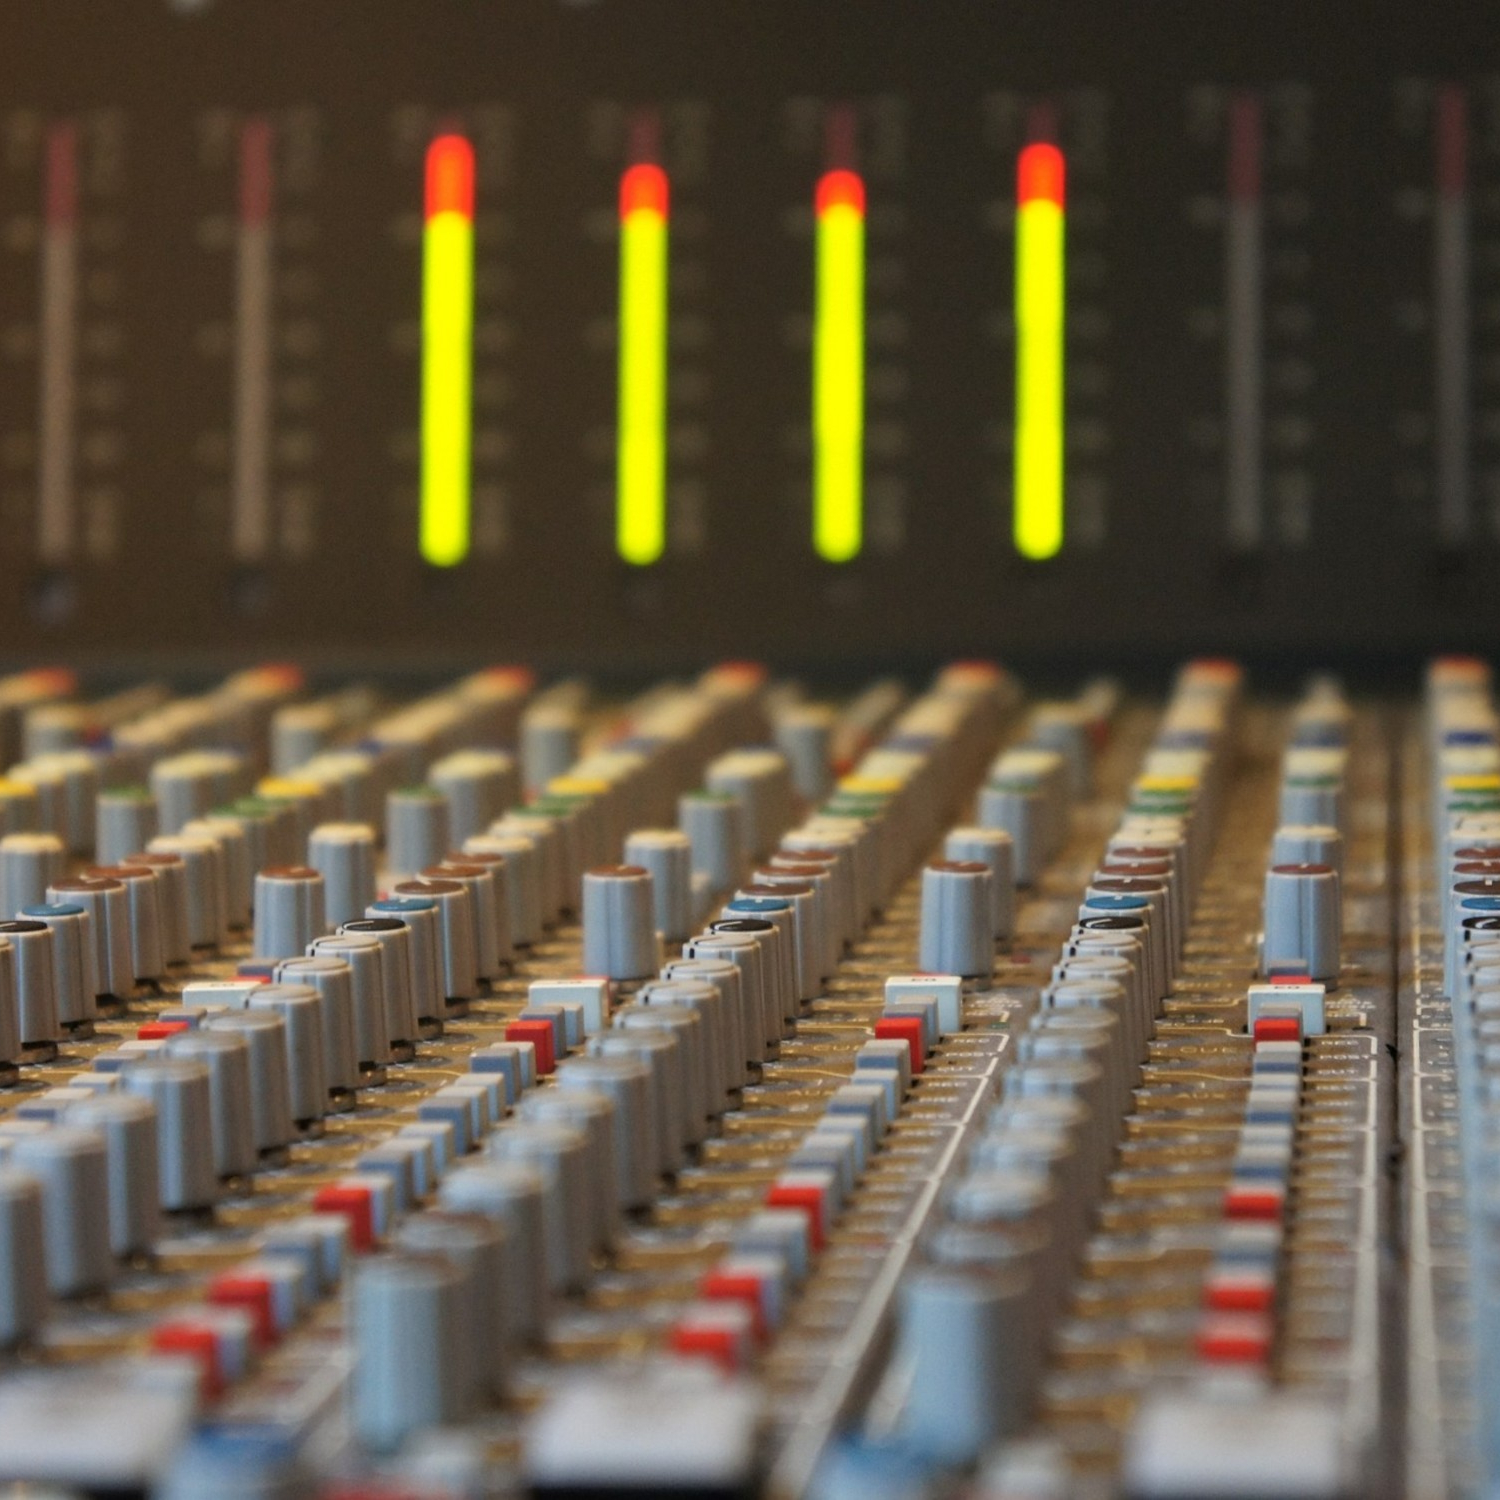 sound meters on a mixing console